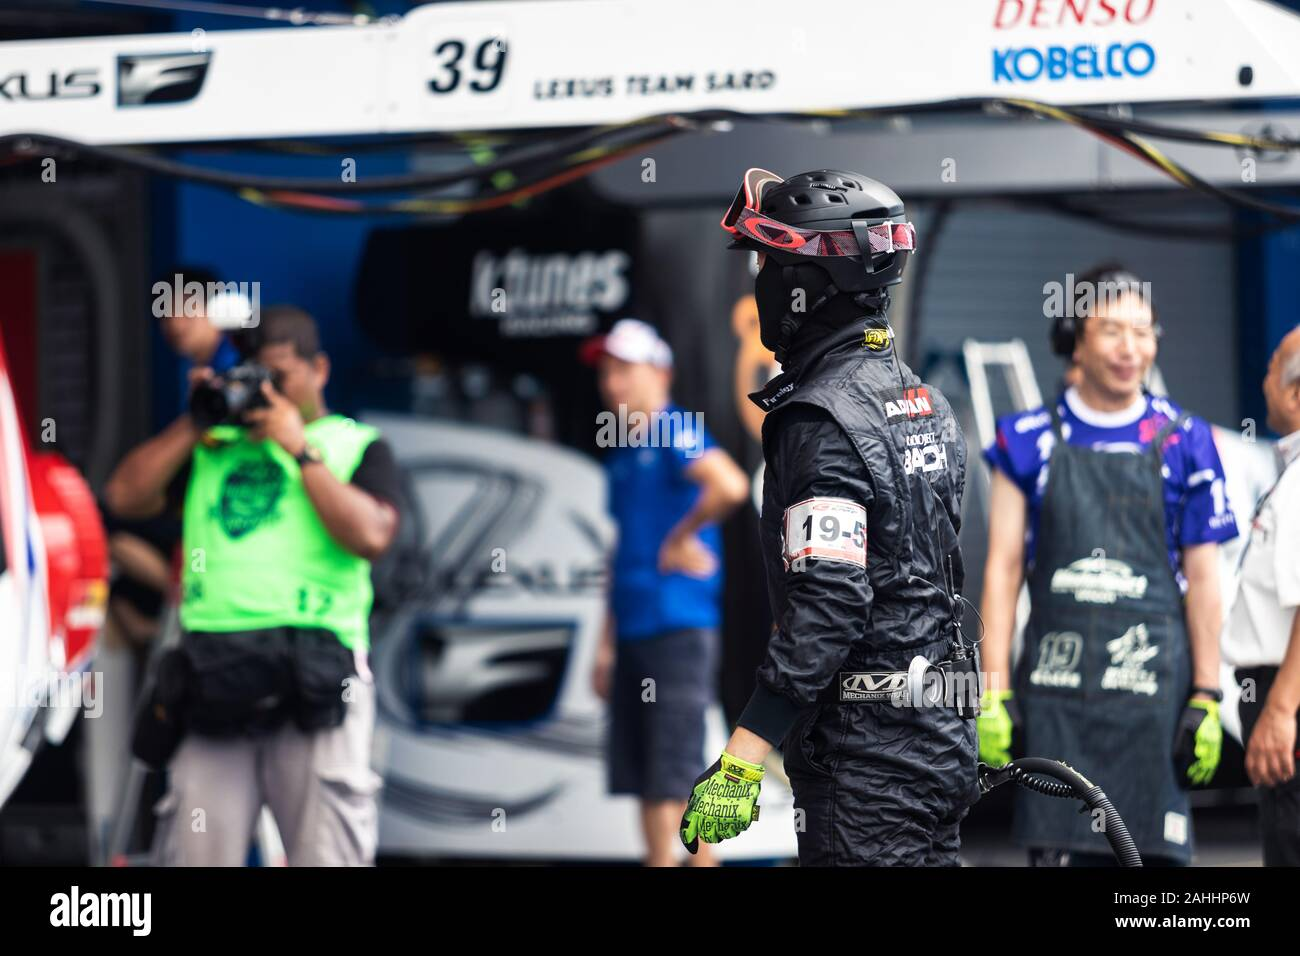 Buriram Thailand 28 June 2019 Thailand Supergt Racing Match Japanese Driver From Some Team Have To Practice Changing Wheels By Their Own Too Stock Photo Alamy